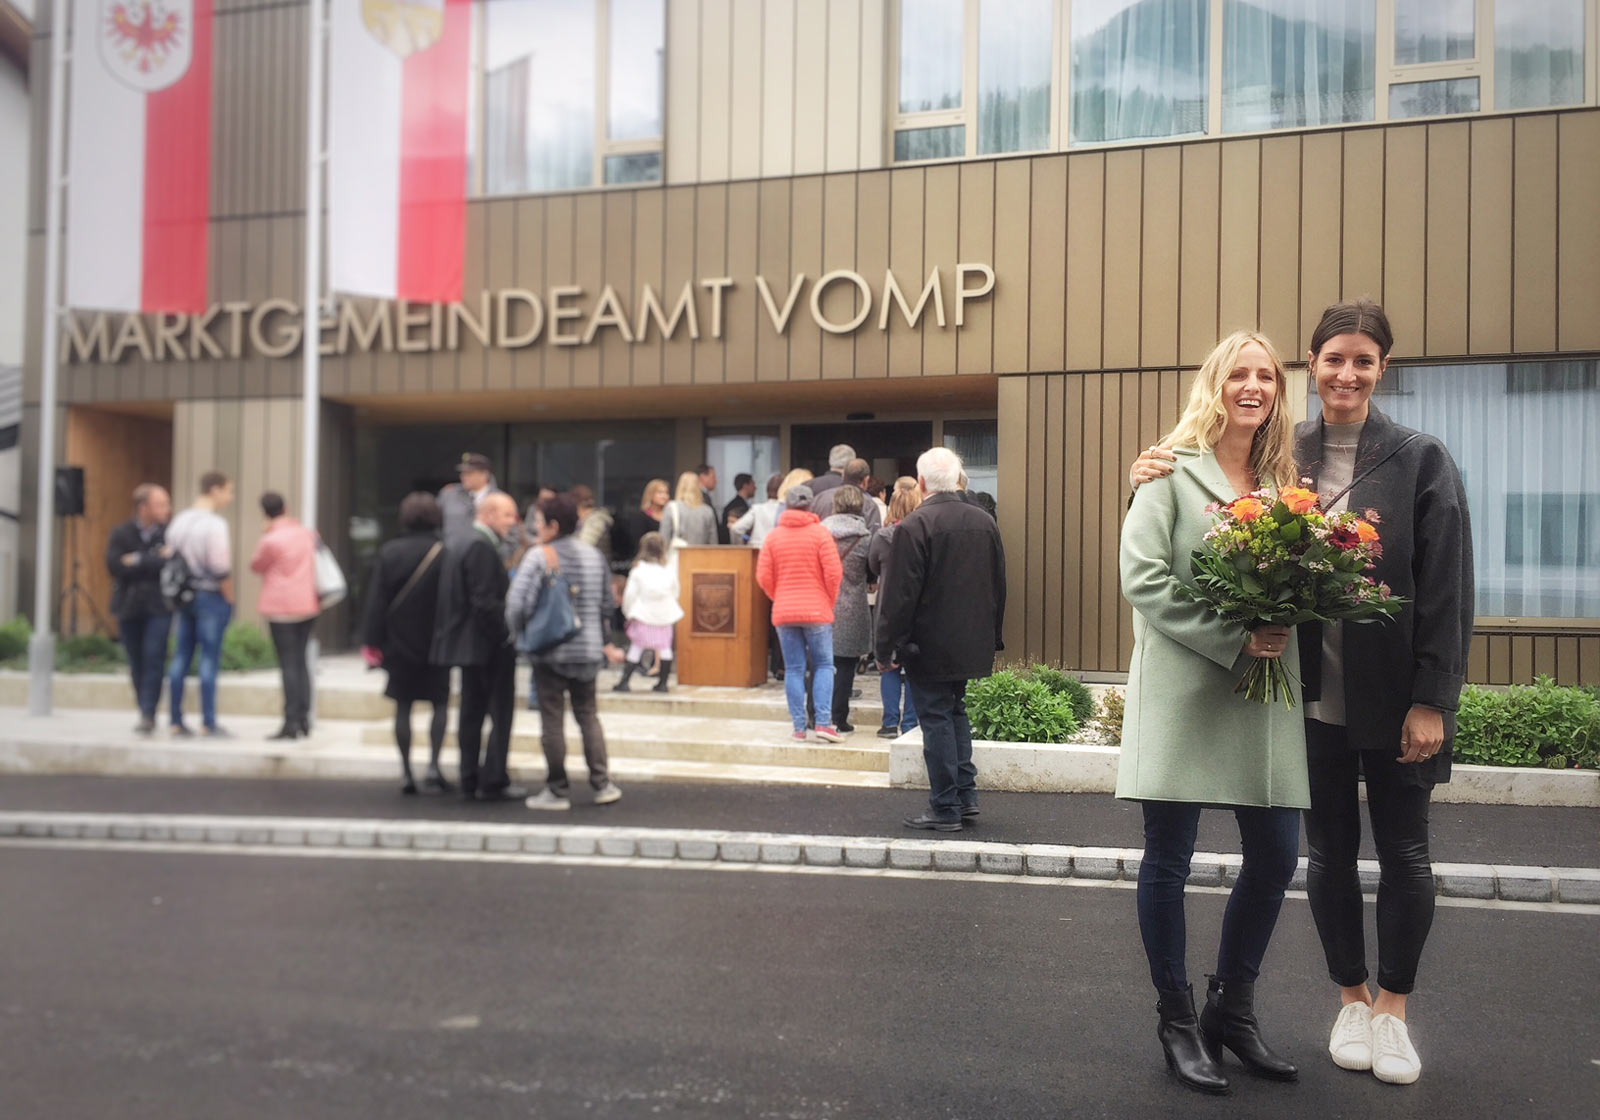 From left: Lead project manager Caroline Ohnmacht and architect Anna Rainer at the opening ceremony of the new municipal offices in Vomp. Photo: ATP